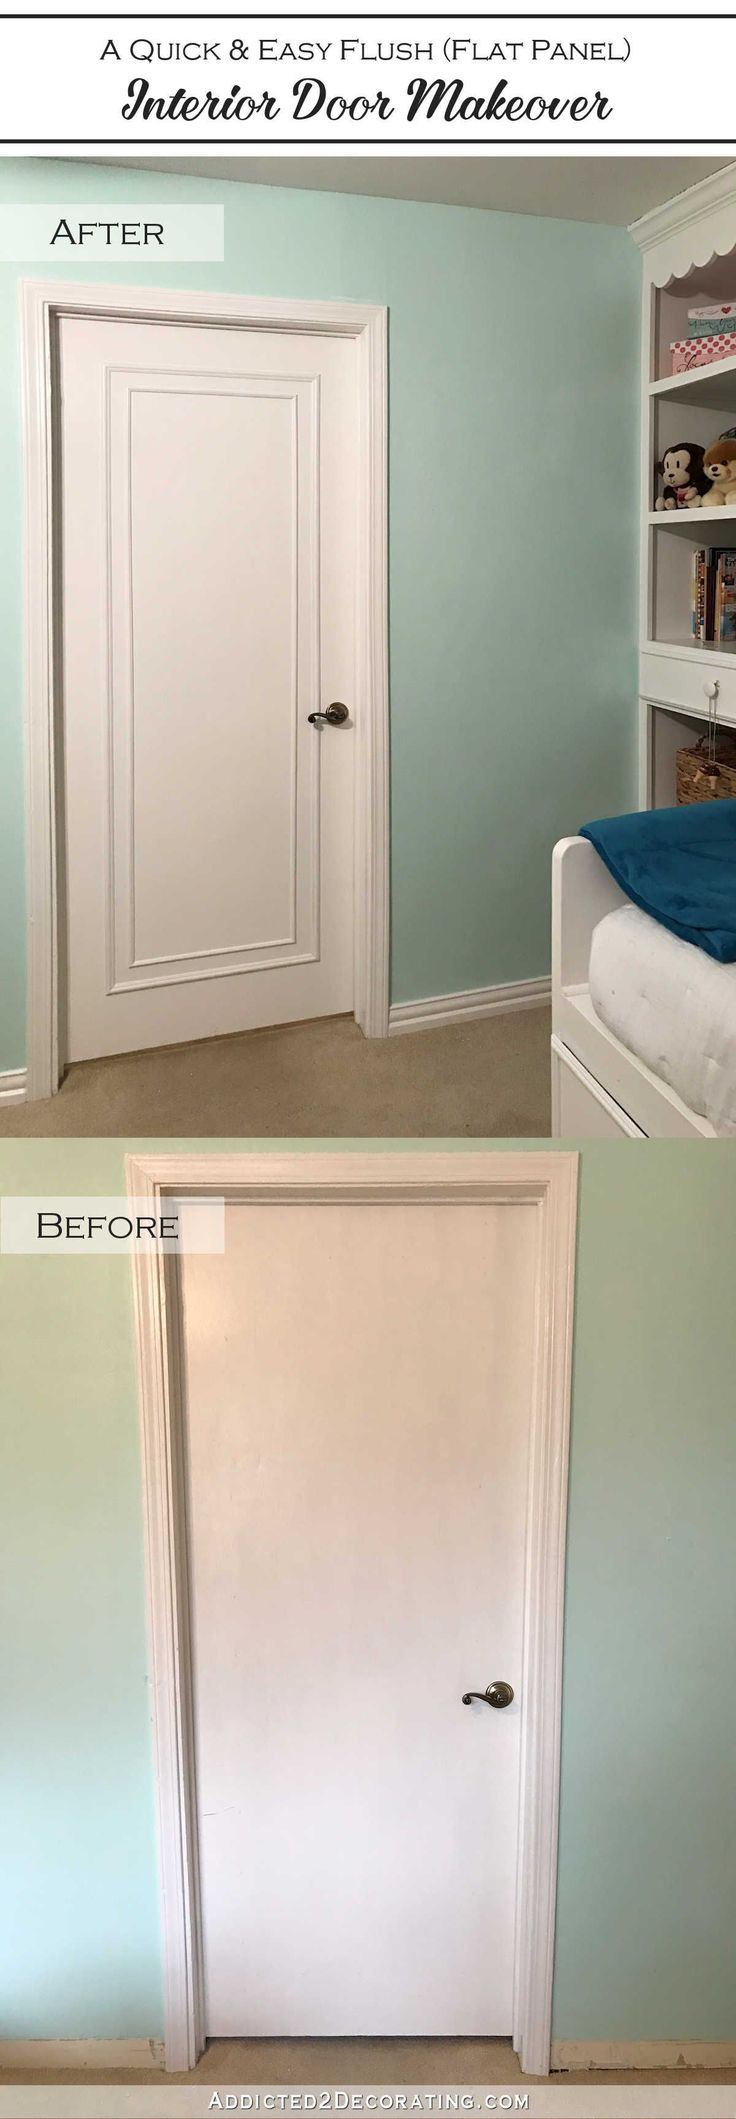 Interior bedroom door - An Easy Inexpensive Way To Update Flush Flat Panel Interior Doors With Moulding